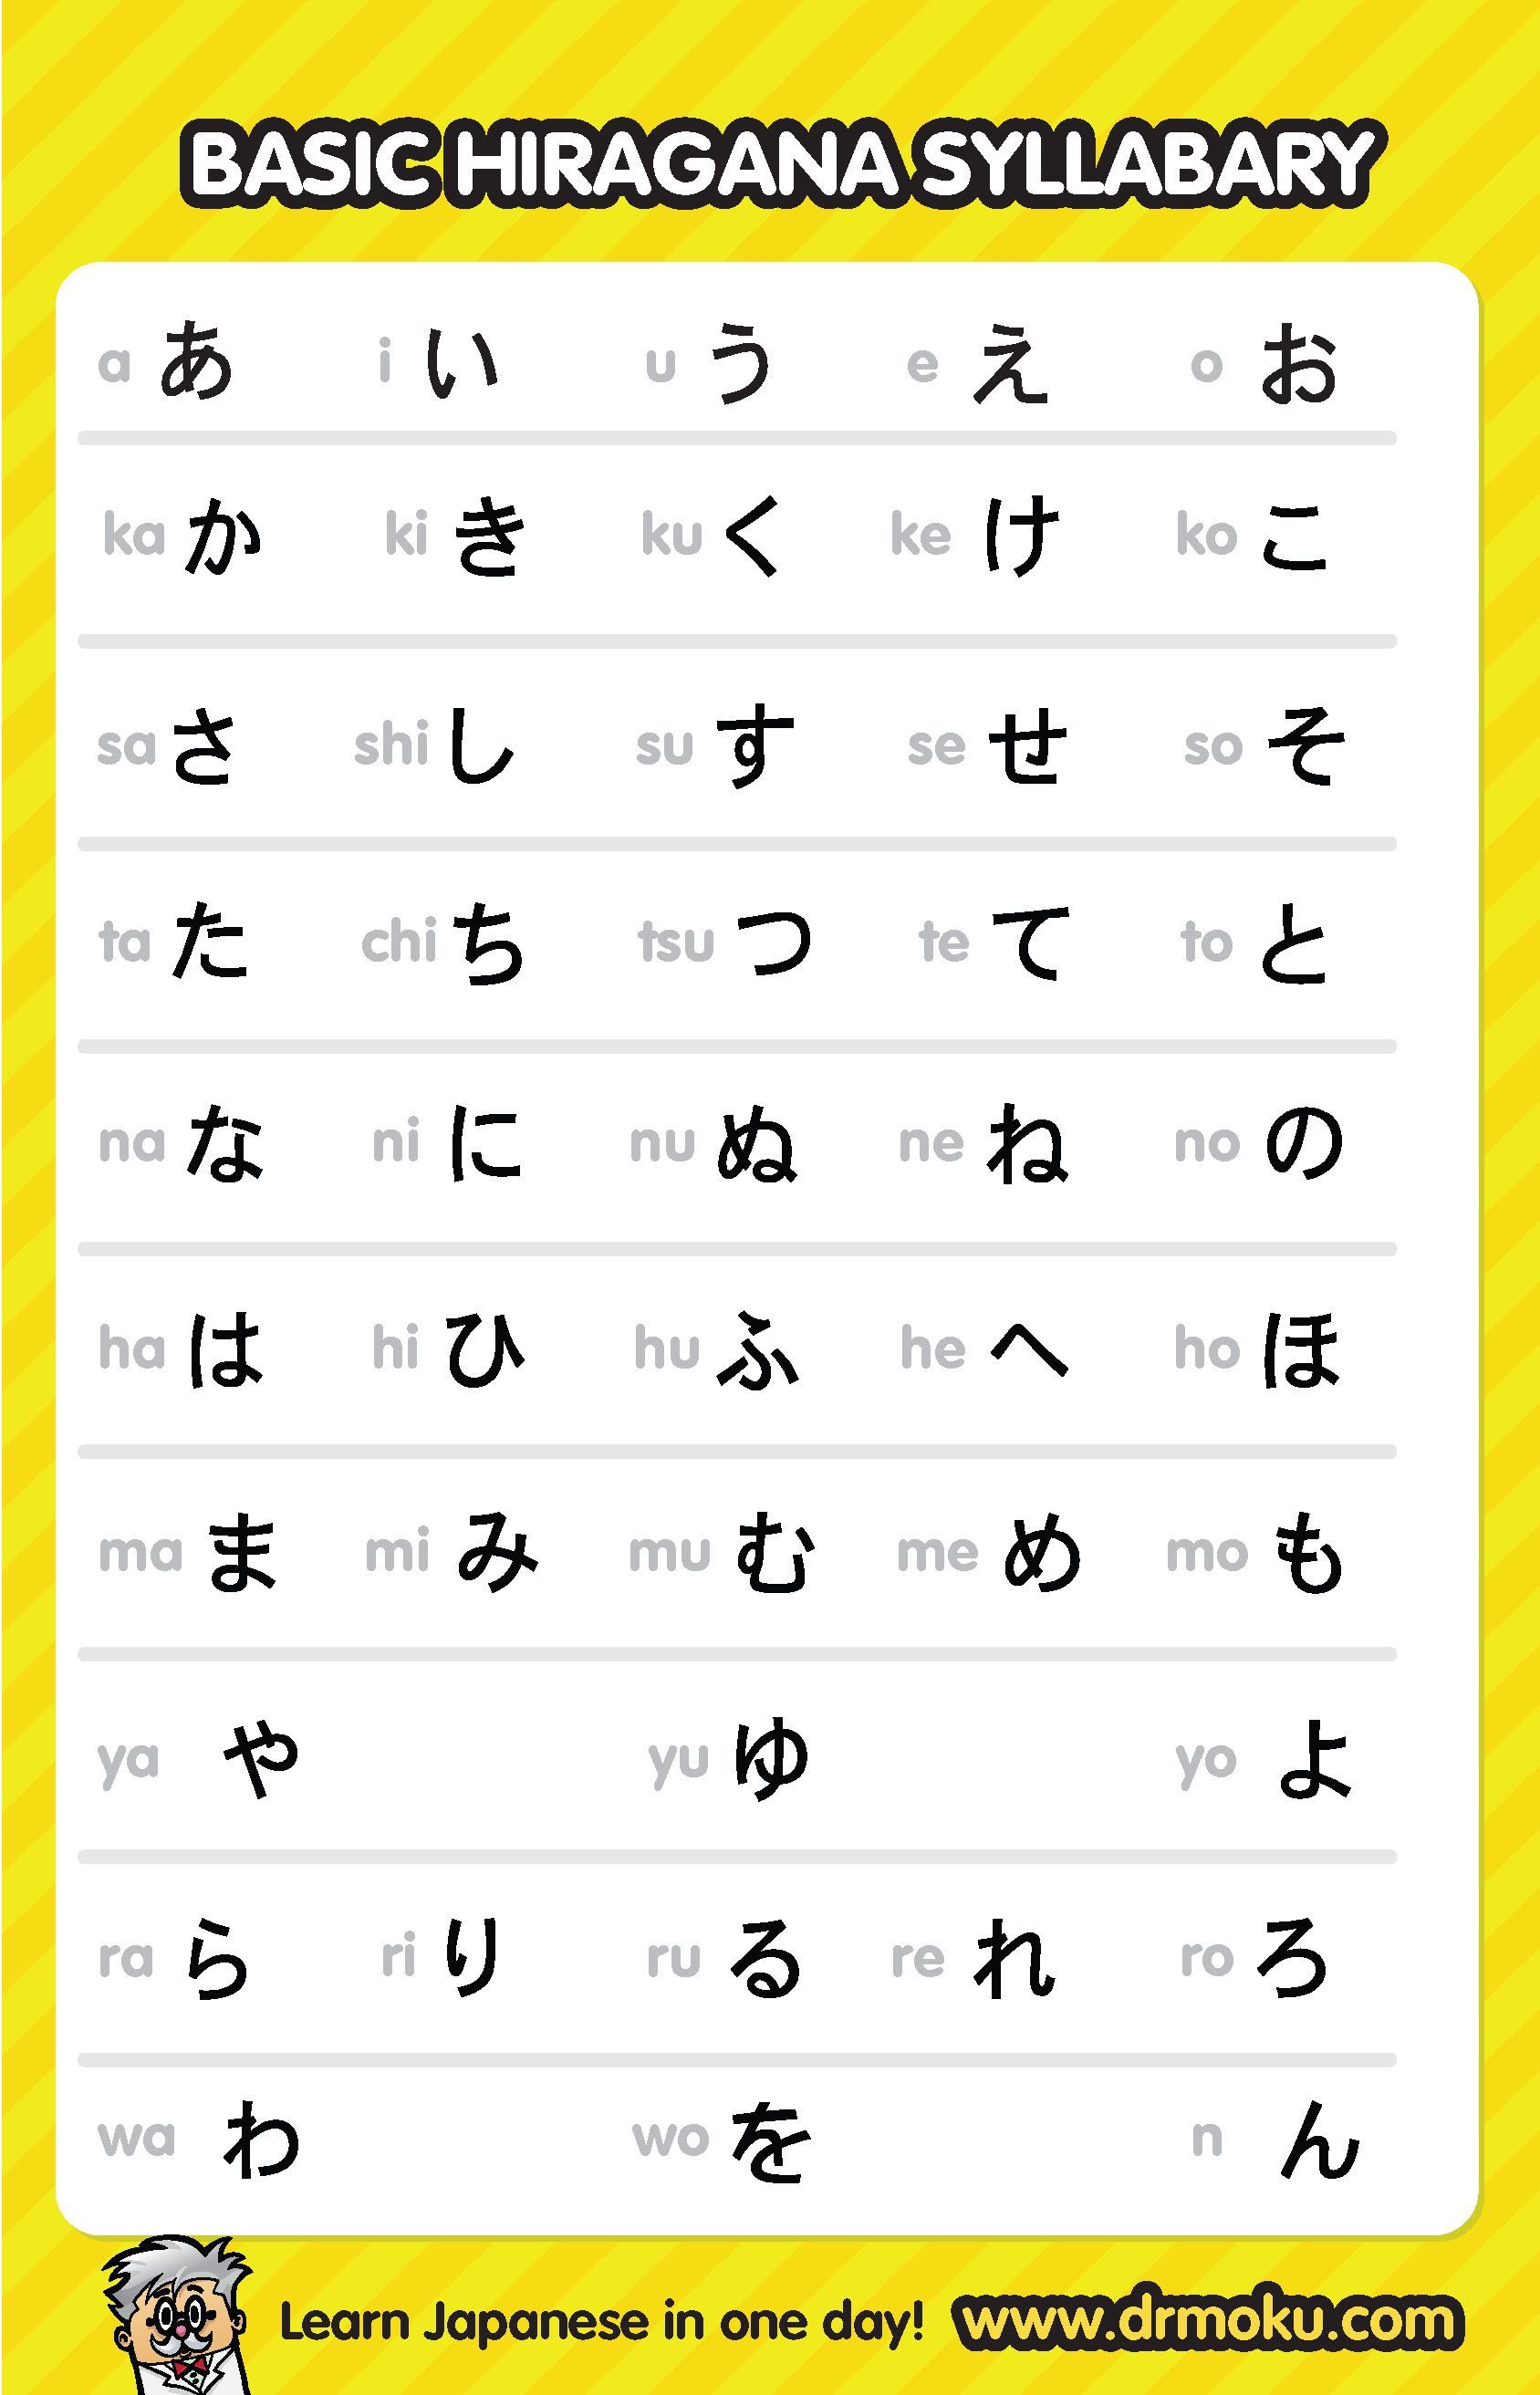 Sassy image with regard to printable hiragana chart